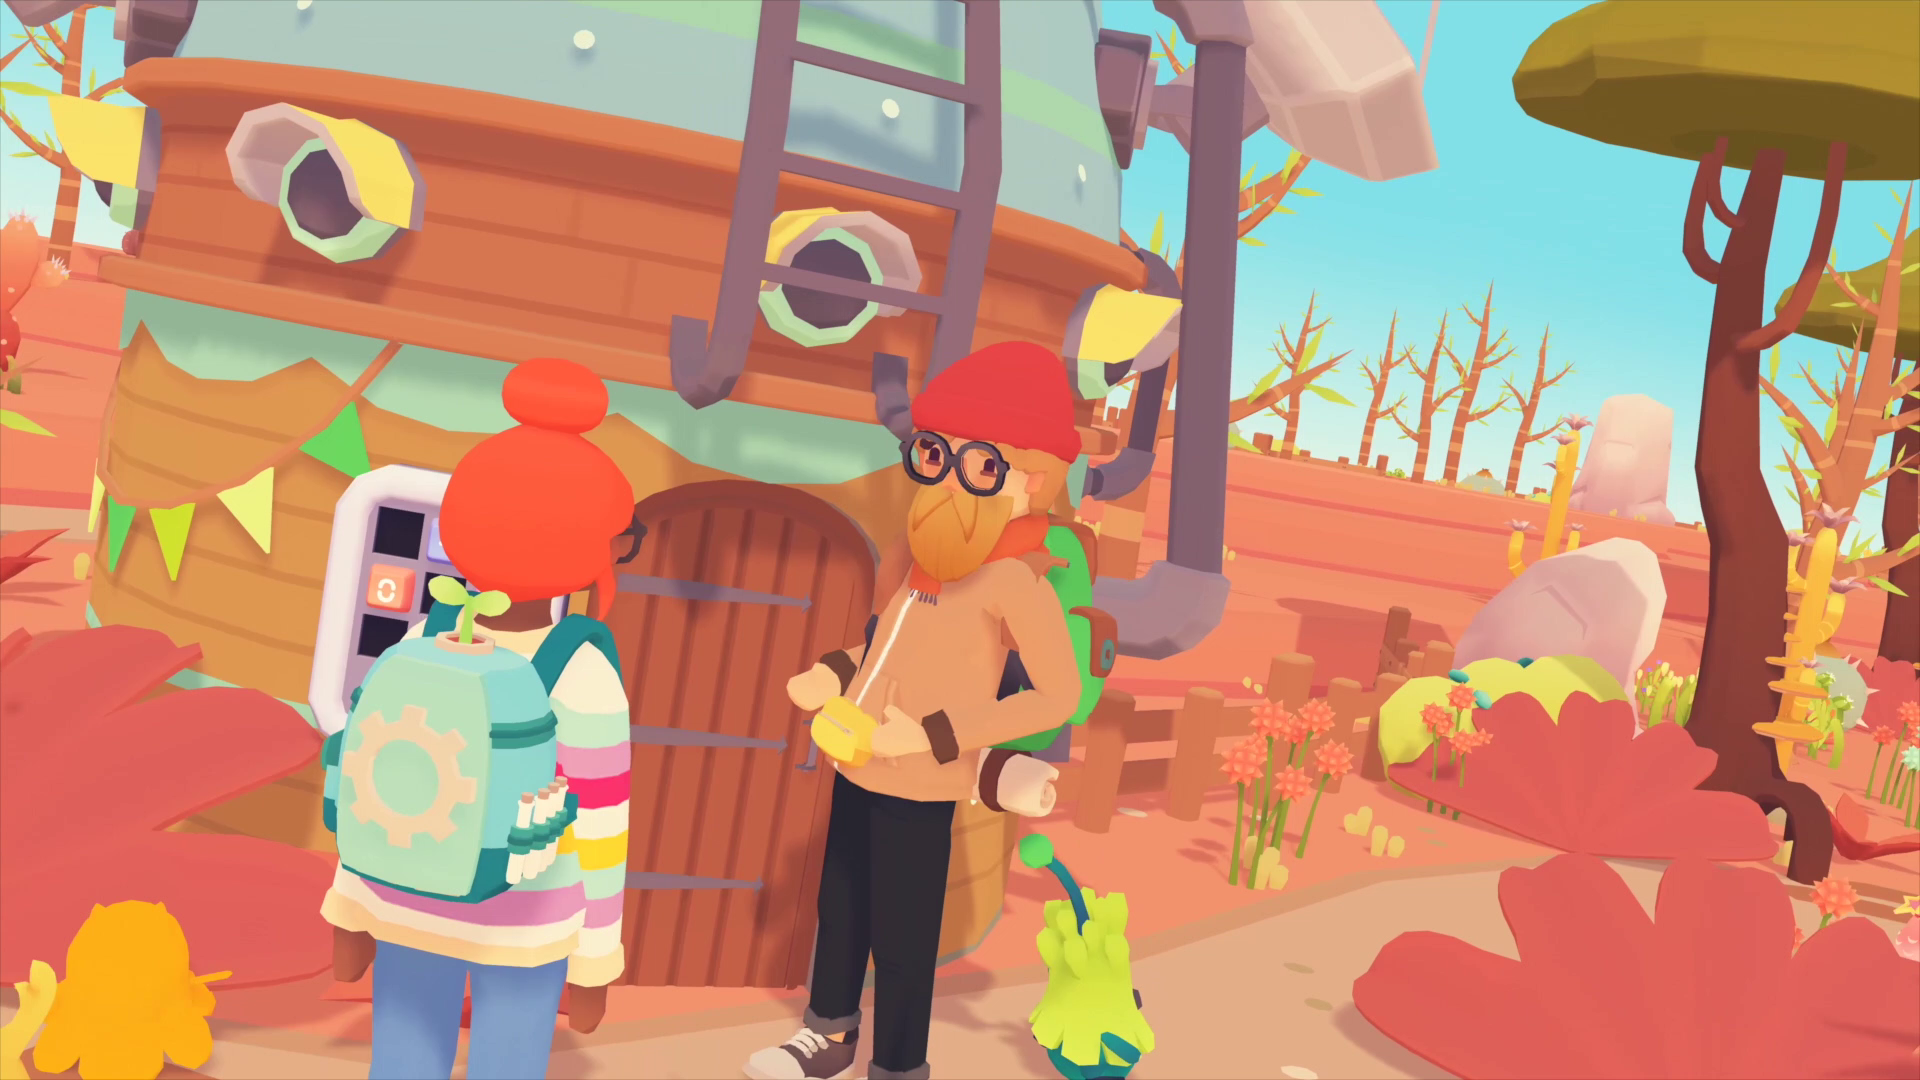 A screenshot from Ooblets early access